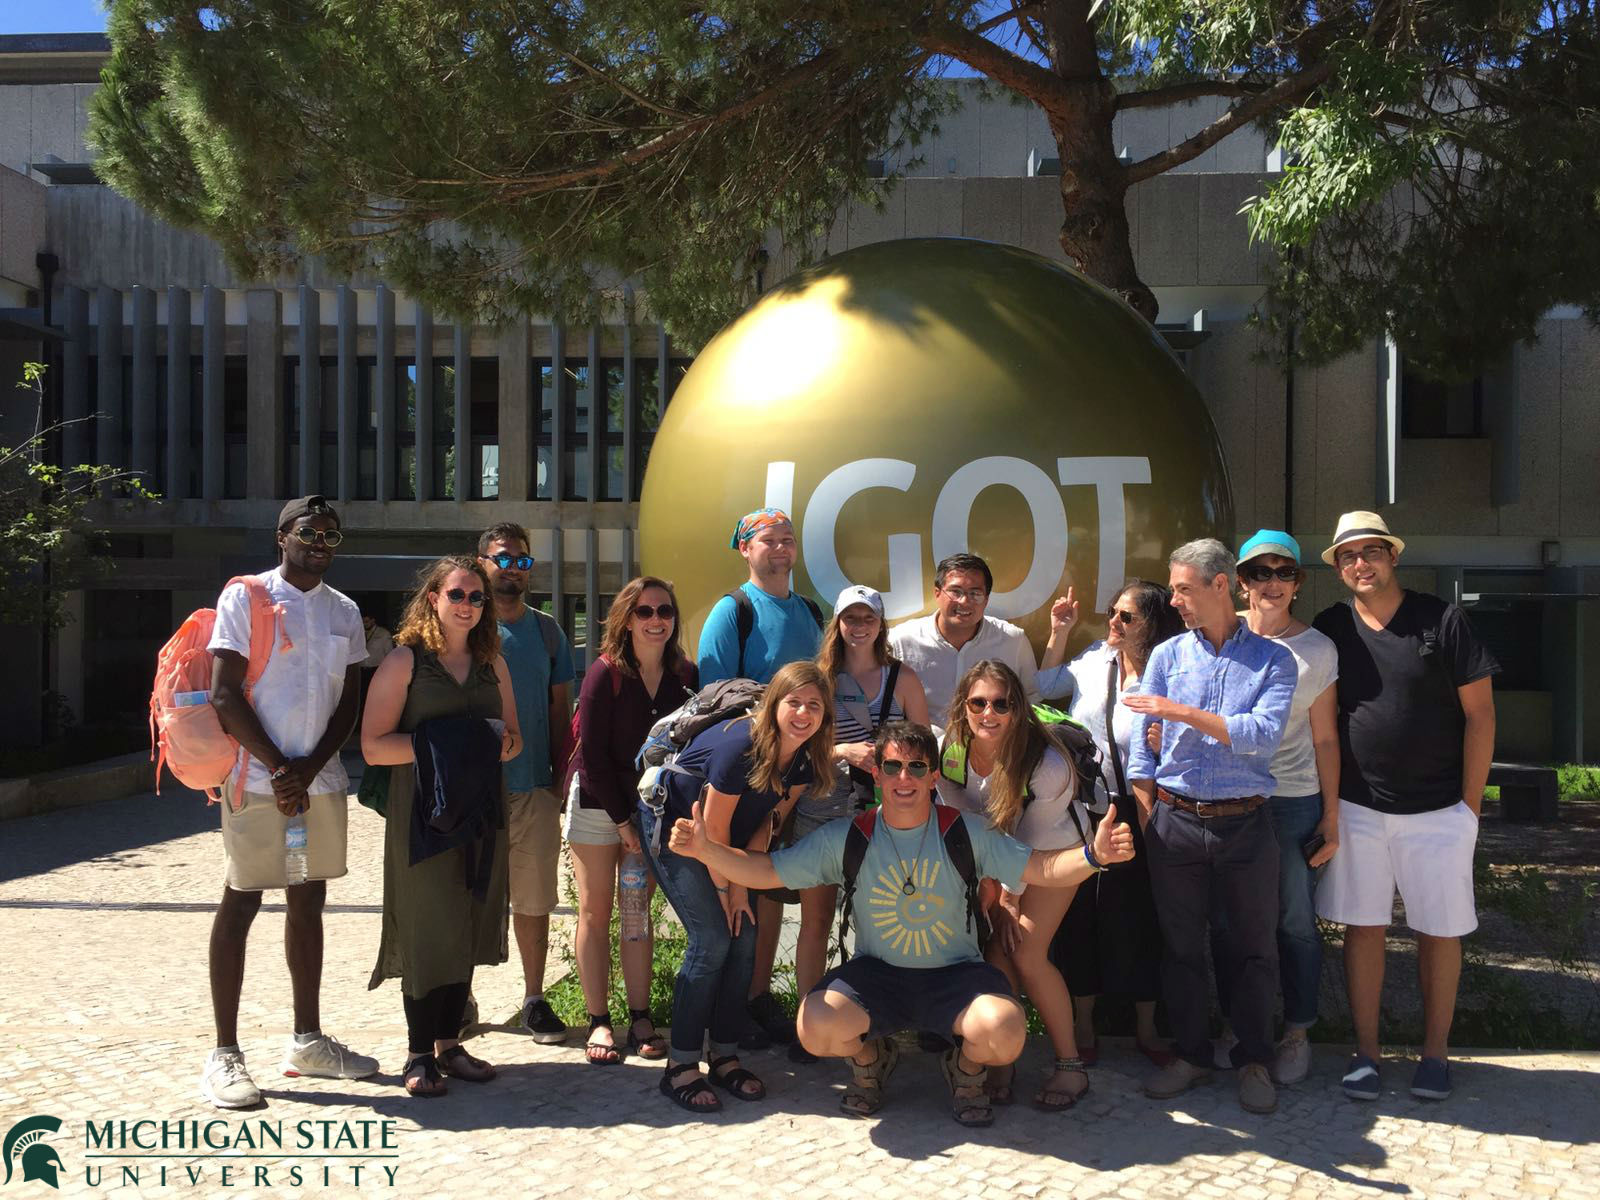 Students from Michigan State University visit IGOT